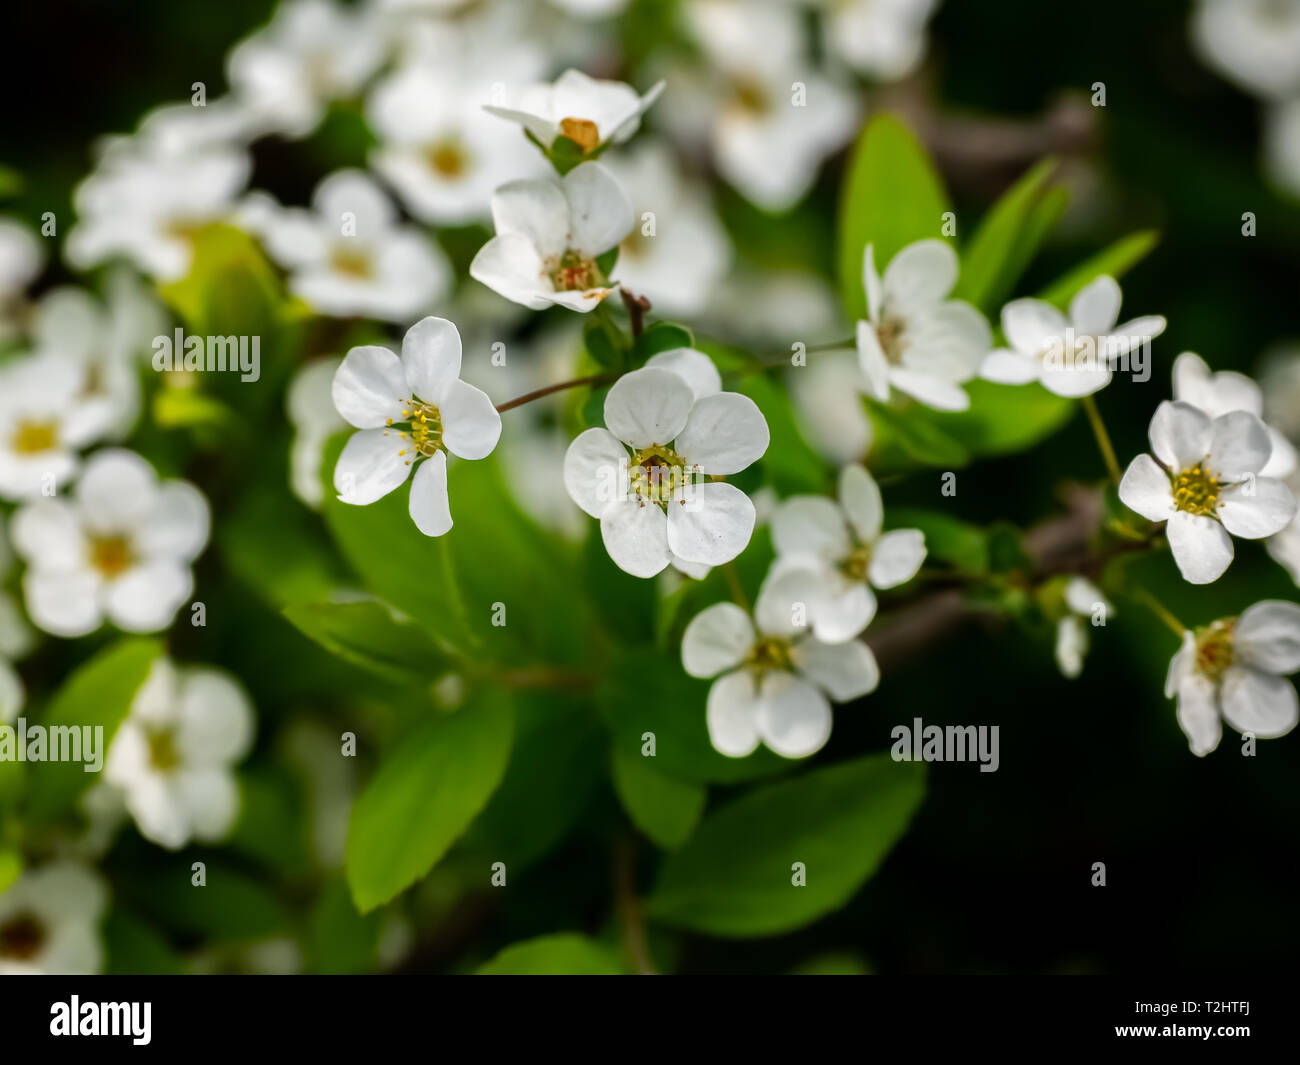 Small White Flowers Bloom On A Small Tree During The Japanese